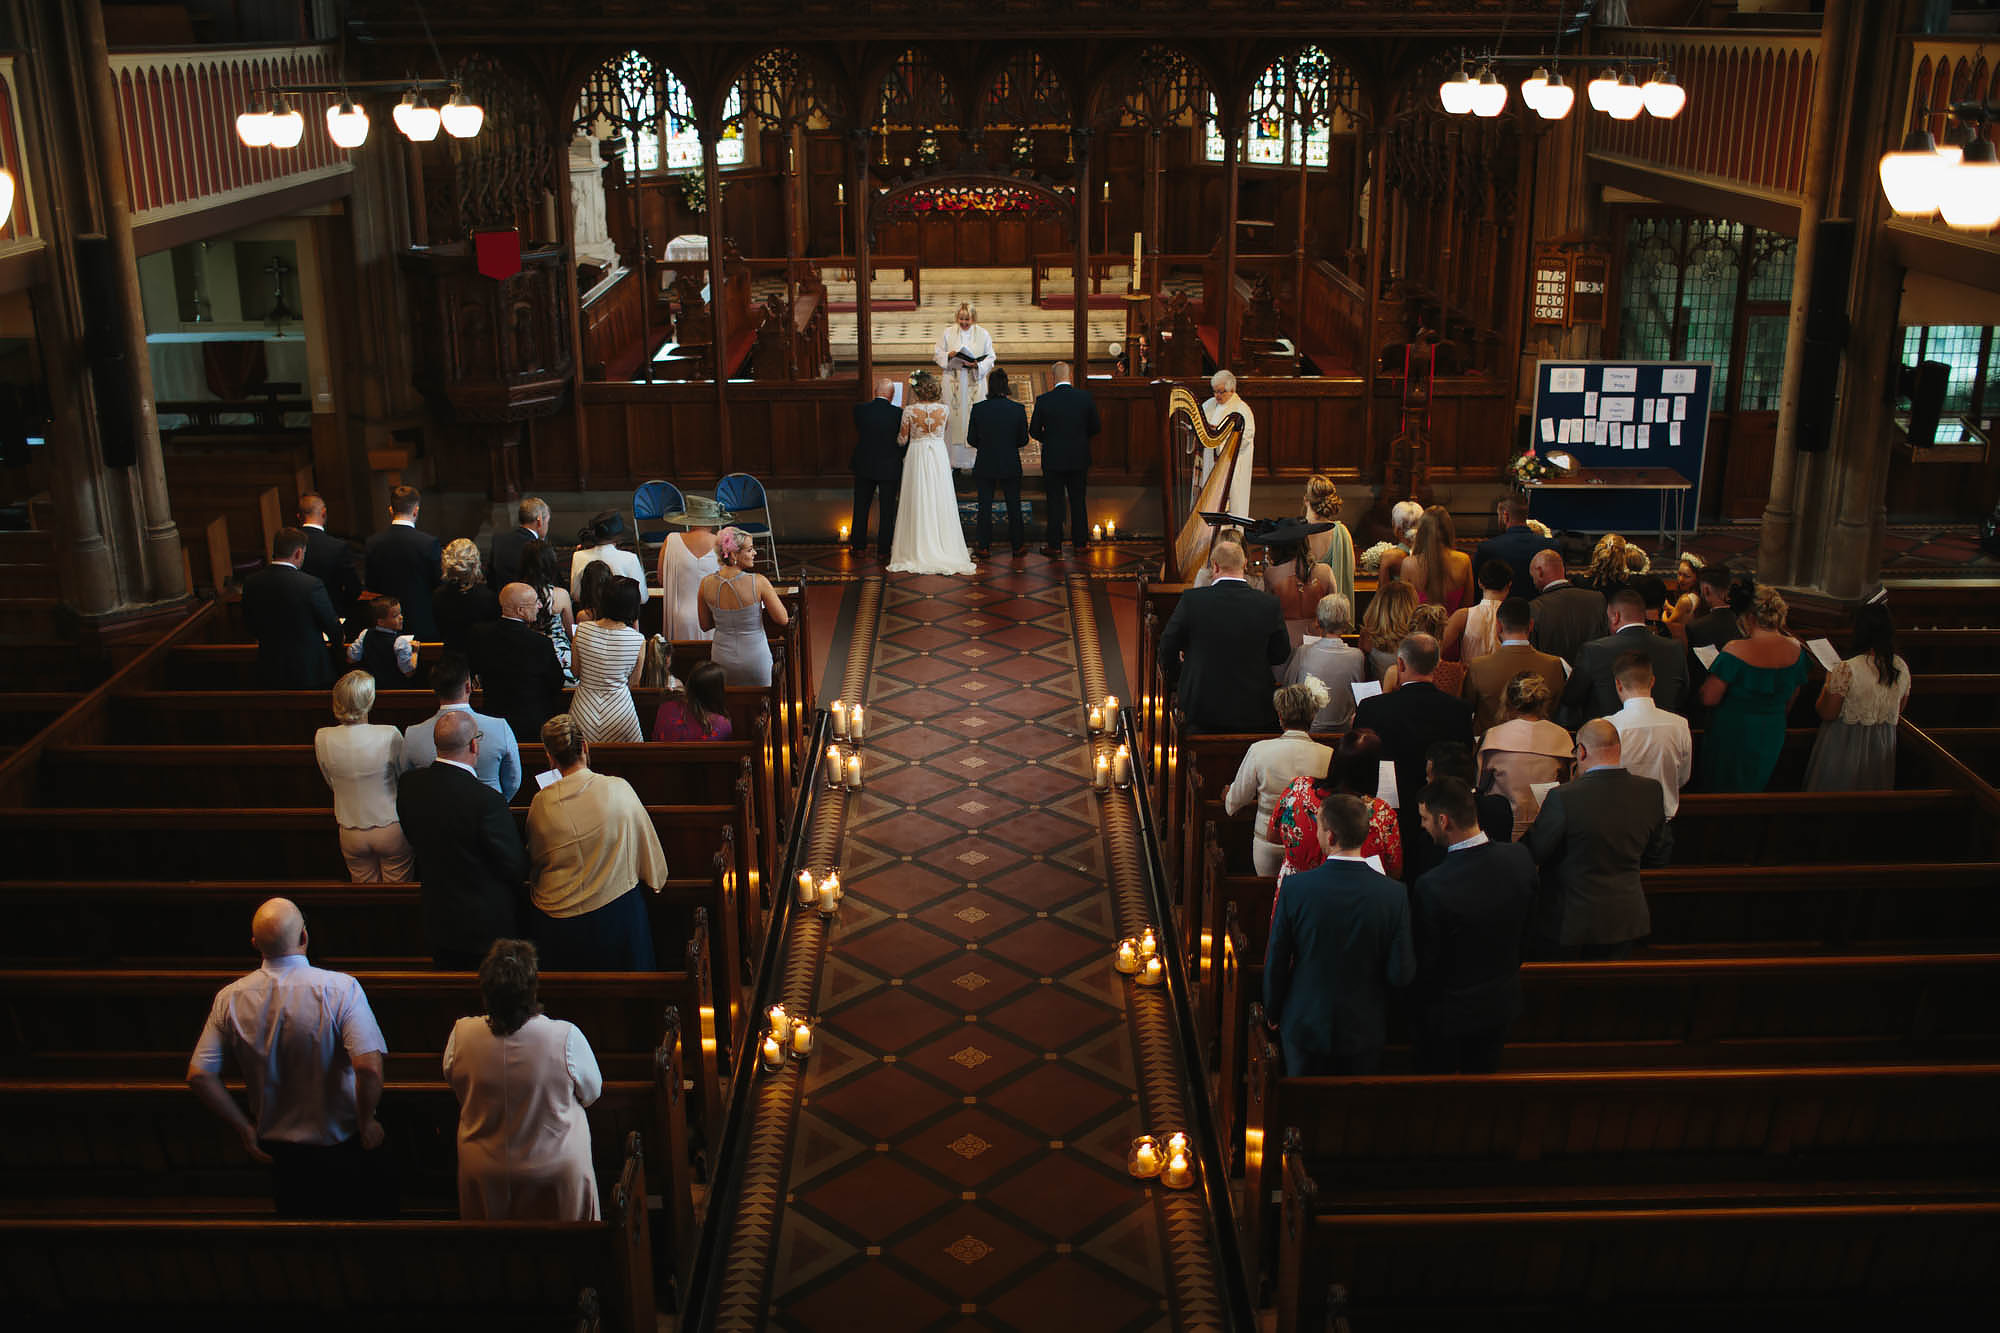 Bride and groom getting married in a church in Manchester